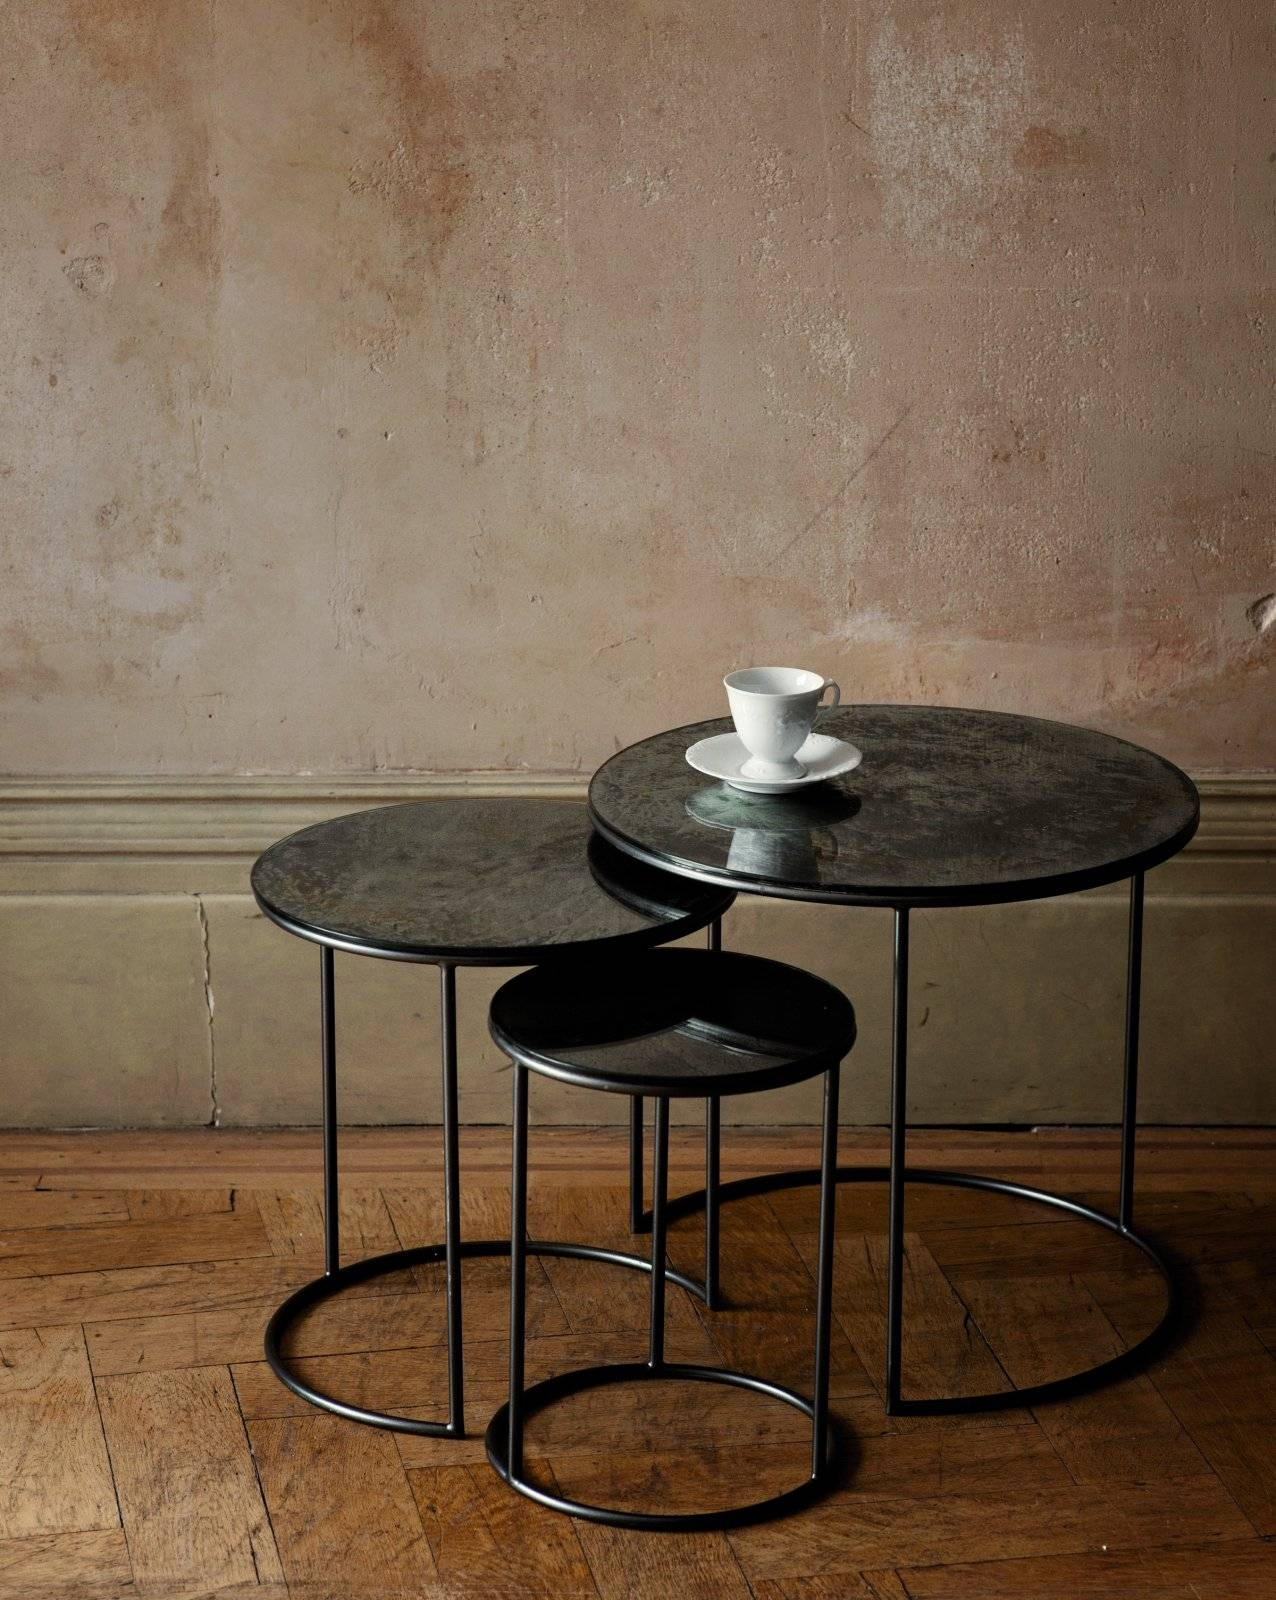 Ochre - Contemporary Furniture, Lighting And Accessory Design intended for Mercury Glass Coffee Tables (Image 25 of 30)